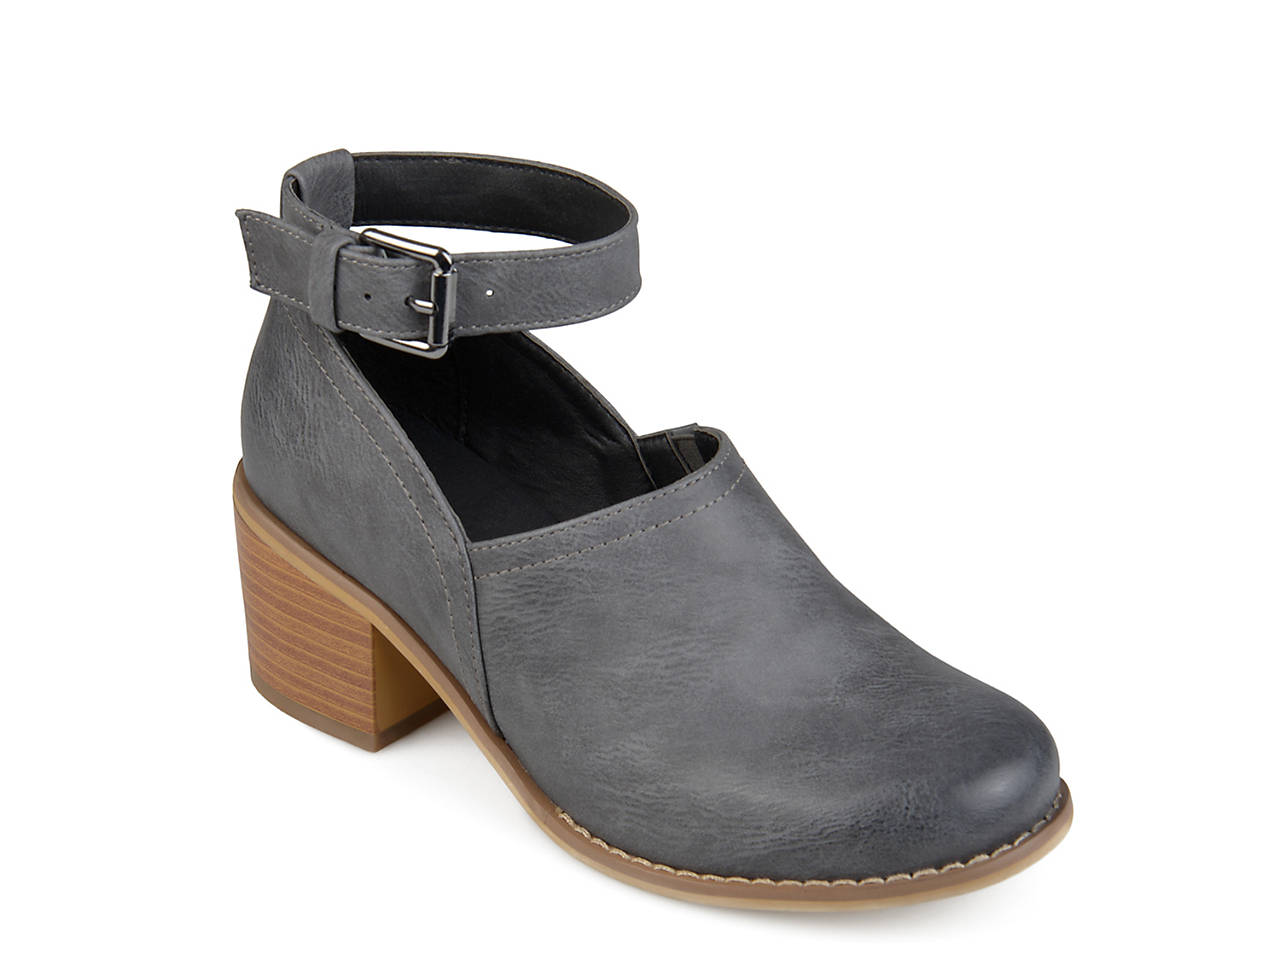 Journee Collection Zhara ... Women's Clogs sale visit sale pre order lowest price sale online discount newest LaZfLN